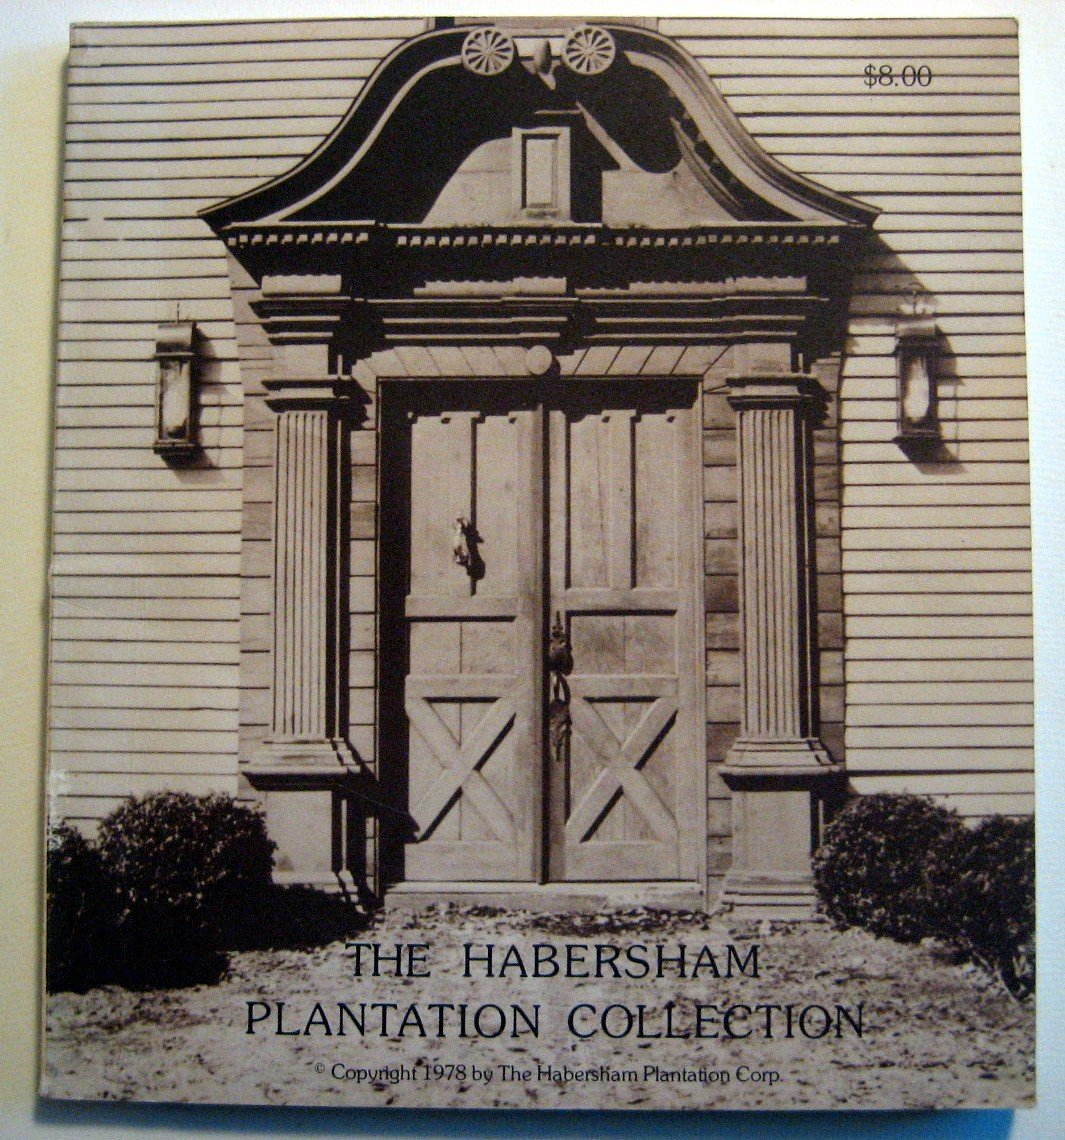 The Original Habersham Plantation Collection Habersham Plantation